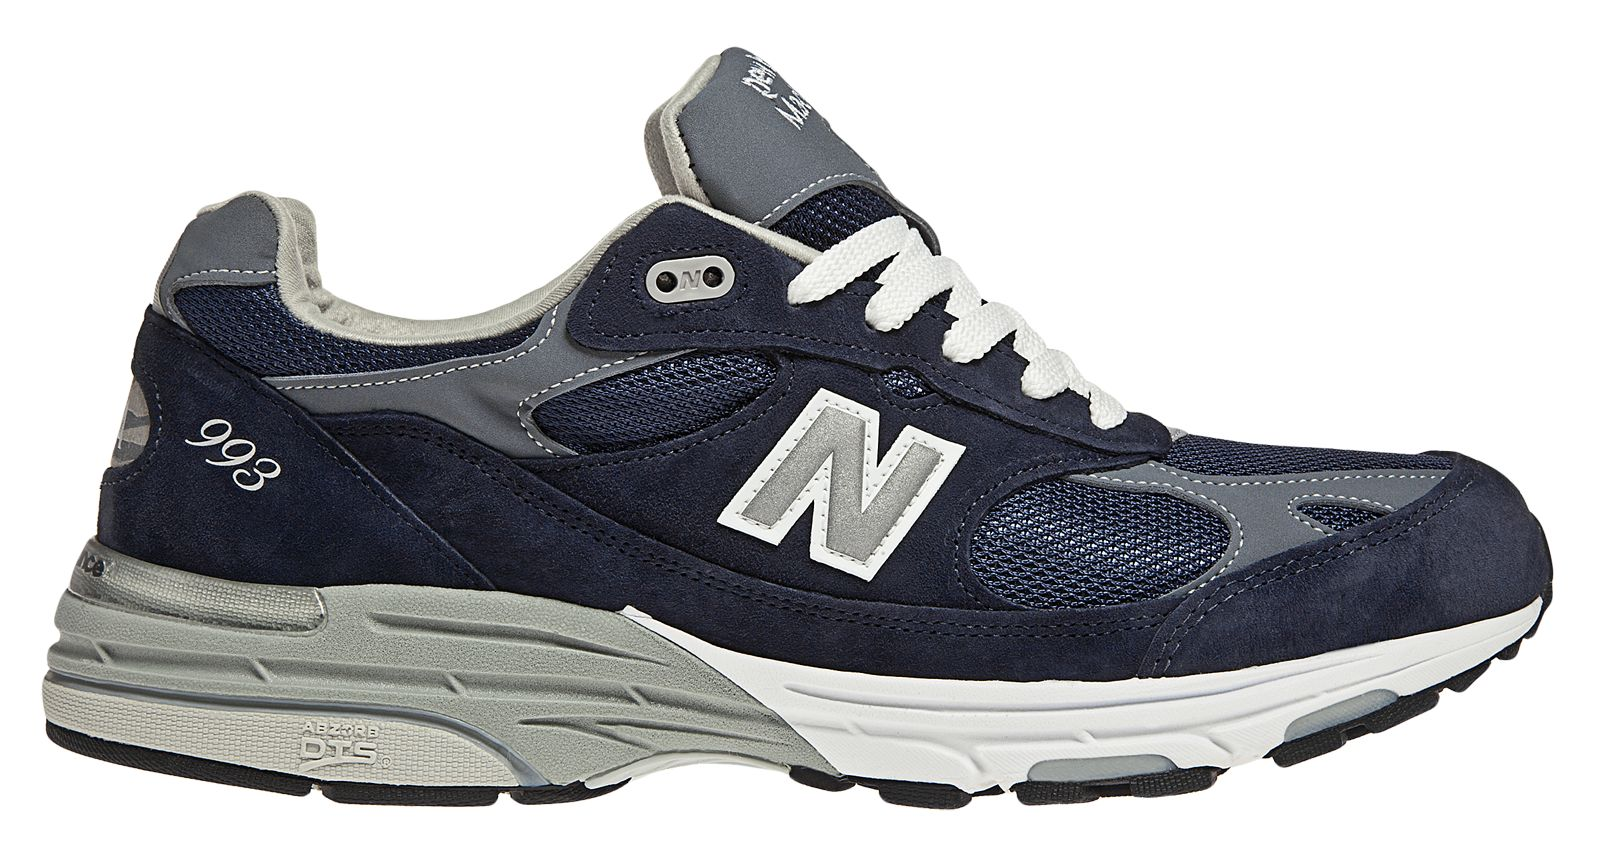 competitive price 1c19e d13b3 Details about New Balance Men's Classic 993 Running Shoes Navy